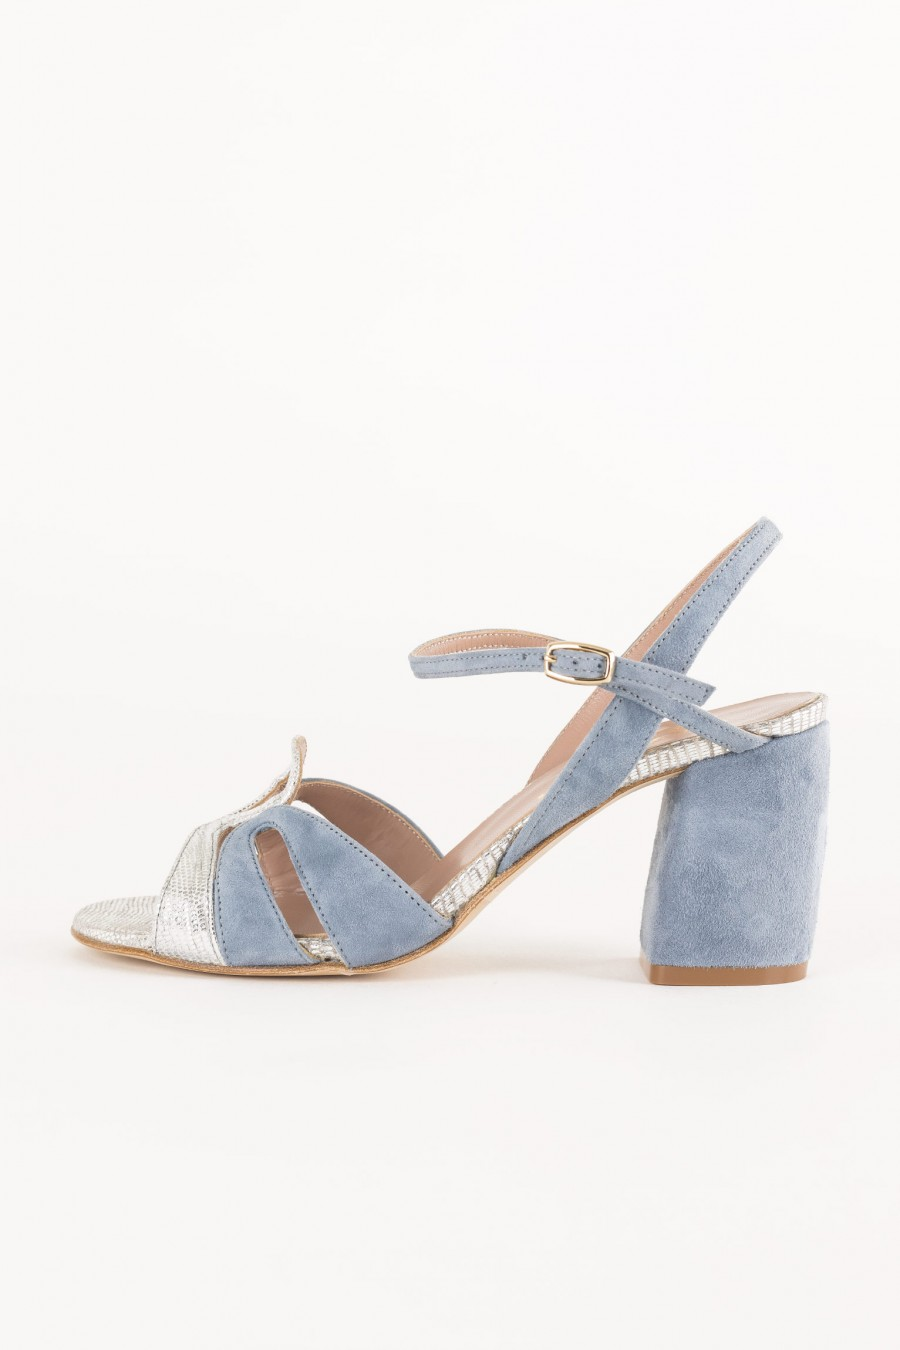 light blue and silver sandal